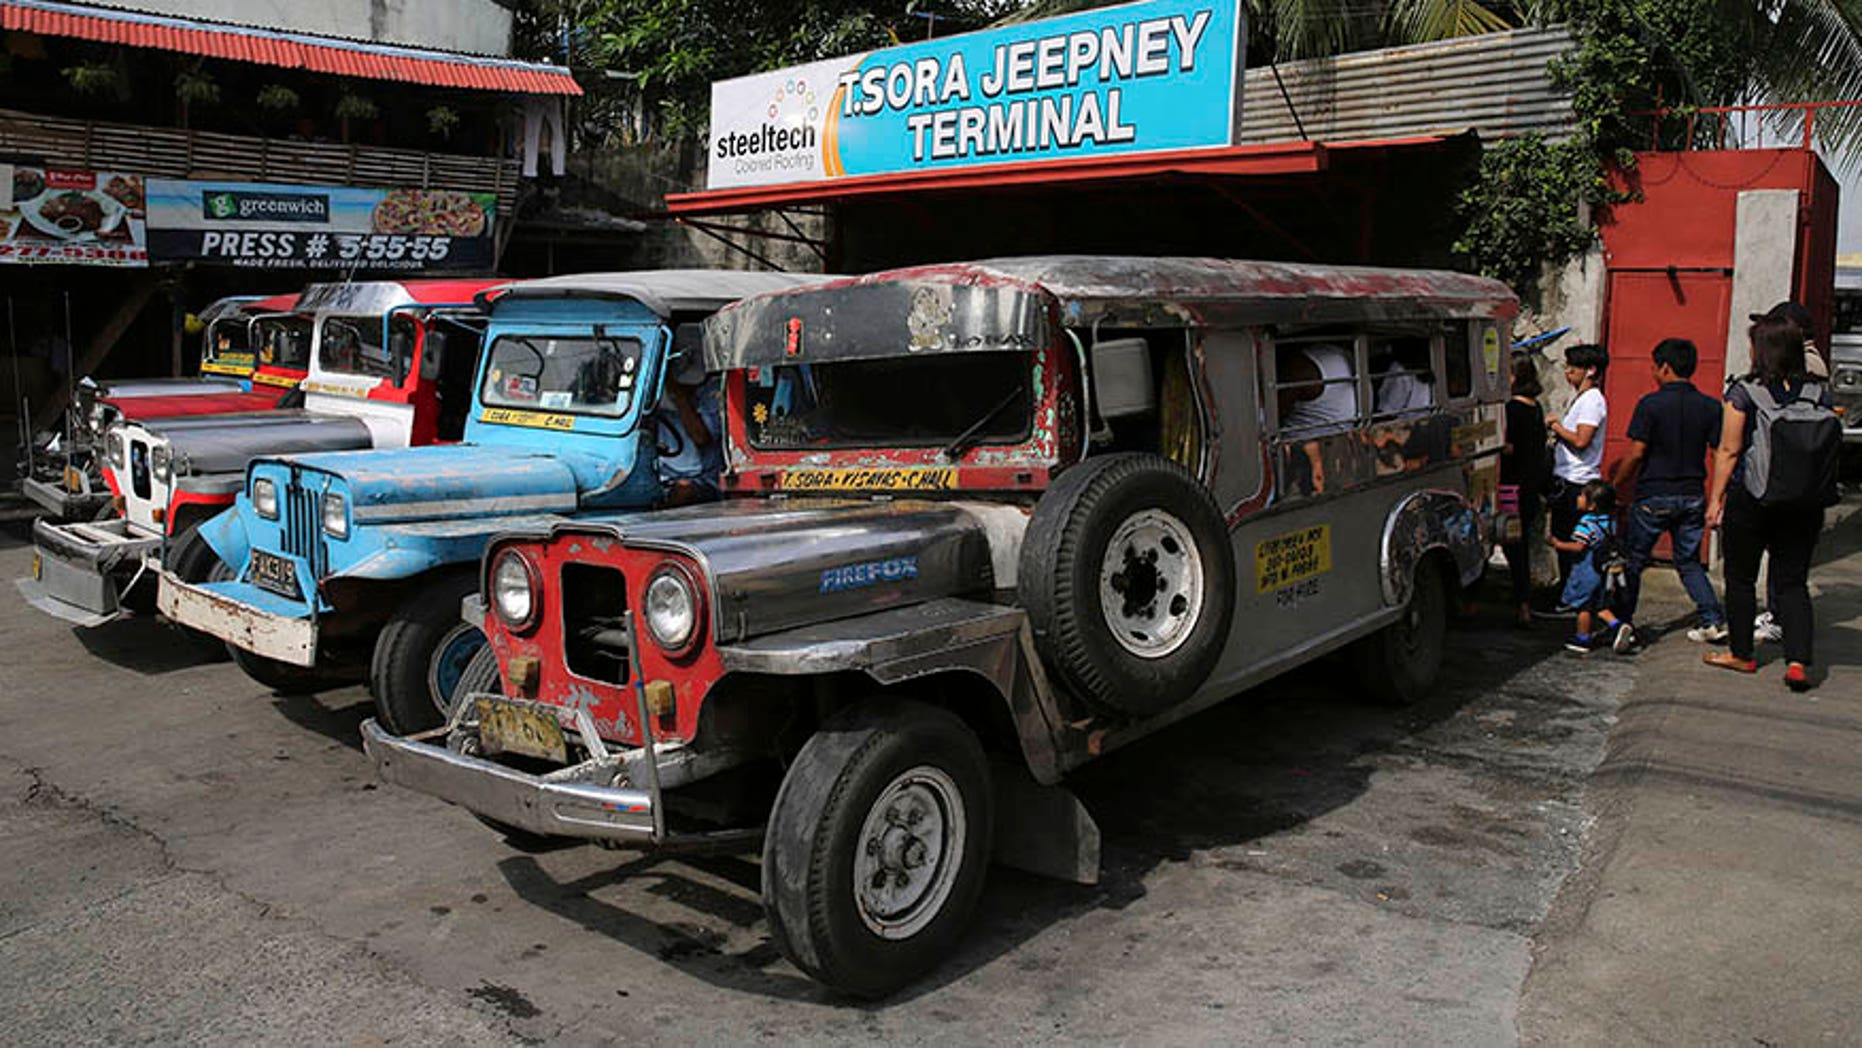 In this Sept. 26, 2017, photo, passengers board jeepneys at a terminal in Manila, Philippines. The iconic passenger jeepney is chugging toward change and uncertainty as a government modernization program aims to improve their engines, safety and convenience in an overhaul that poor Filipino drivers and owners say they can't afford. (AP Photo/Aaron Favila)